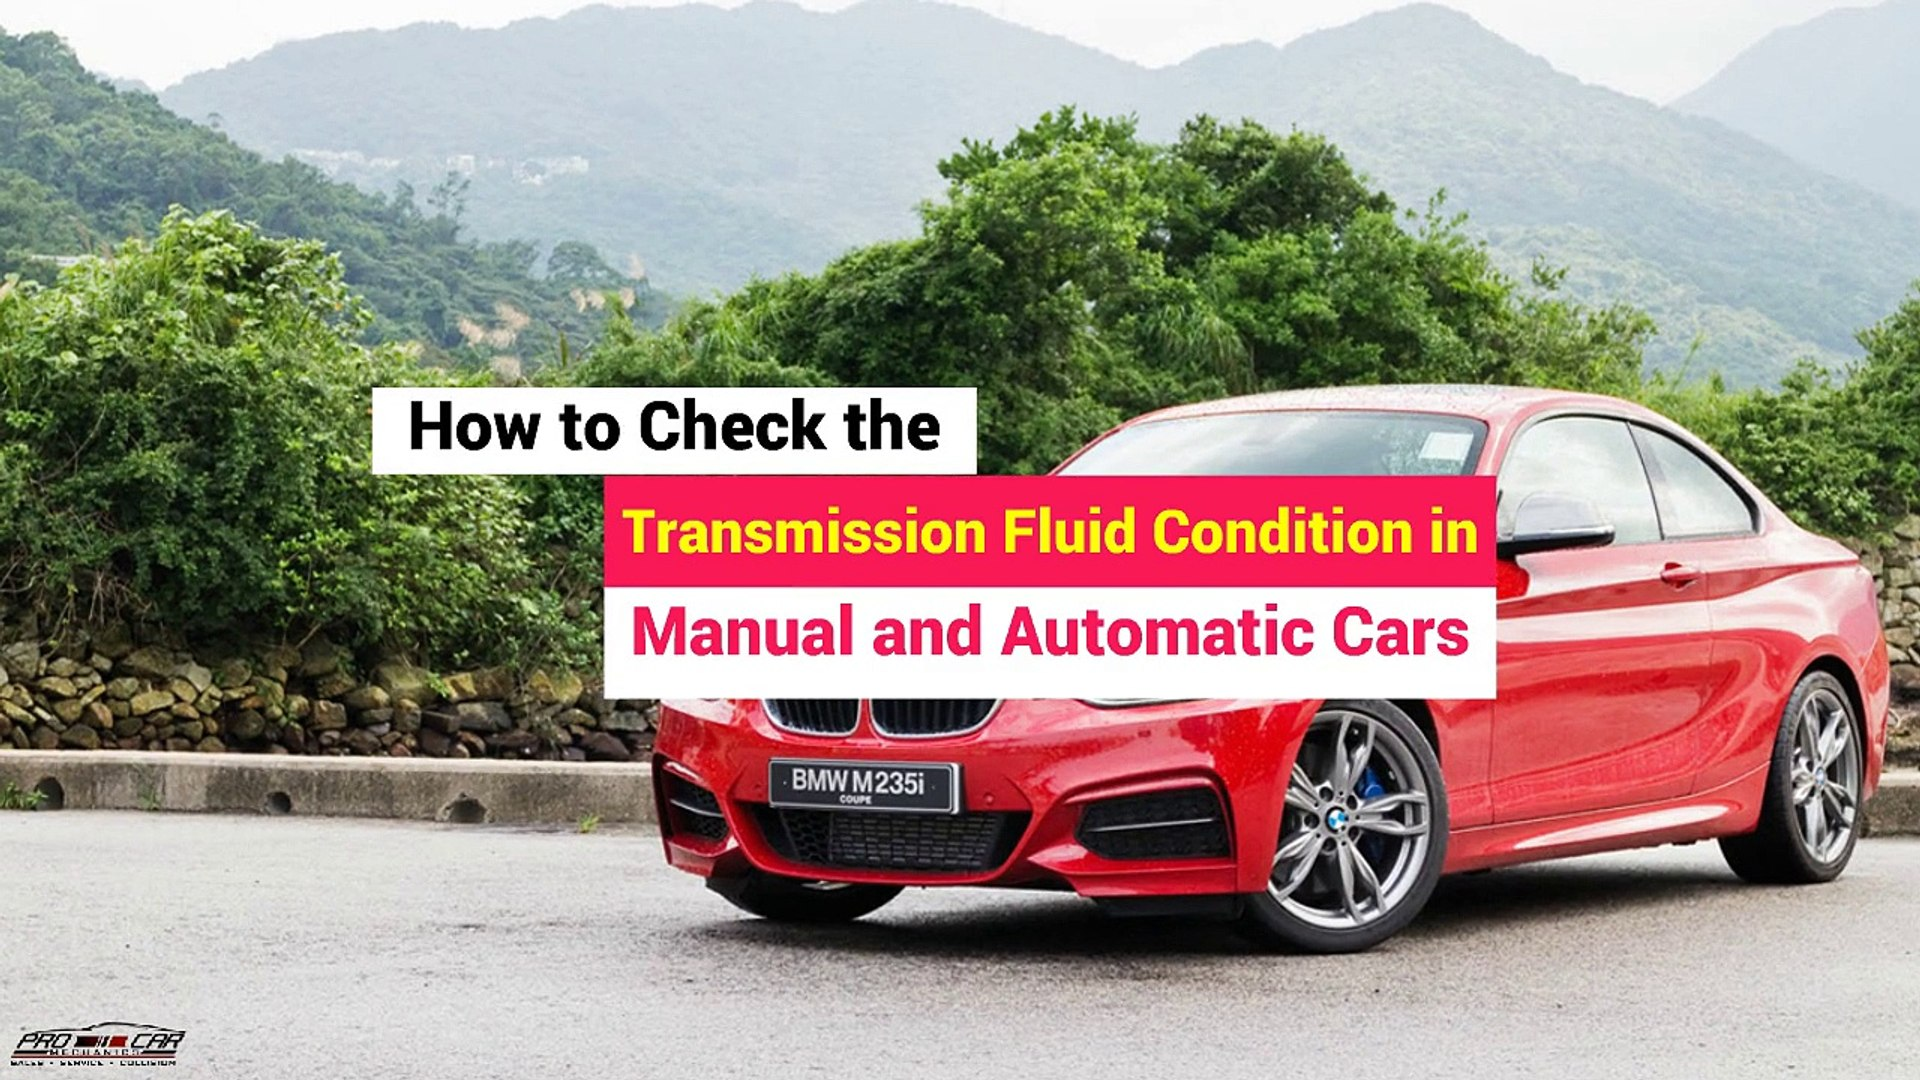 Check Transmission Fluid >> How To Check The Transmission Fluid Condition In Manual And Automatic Cars